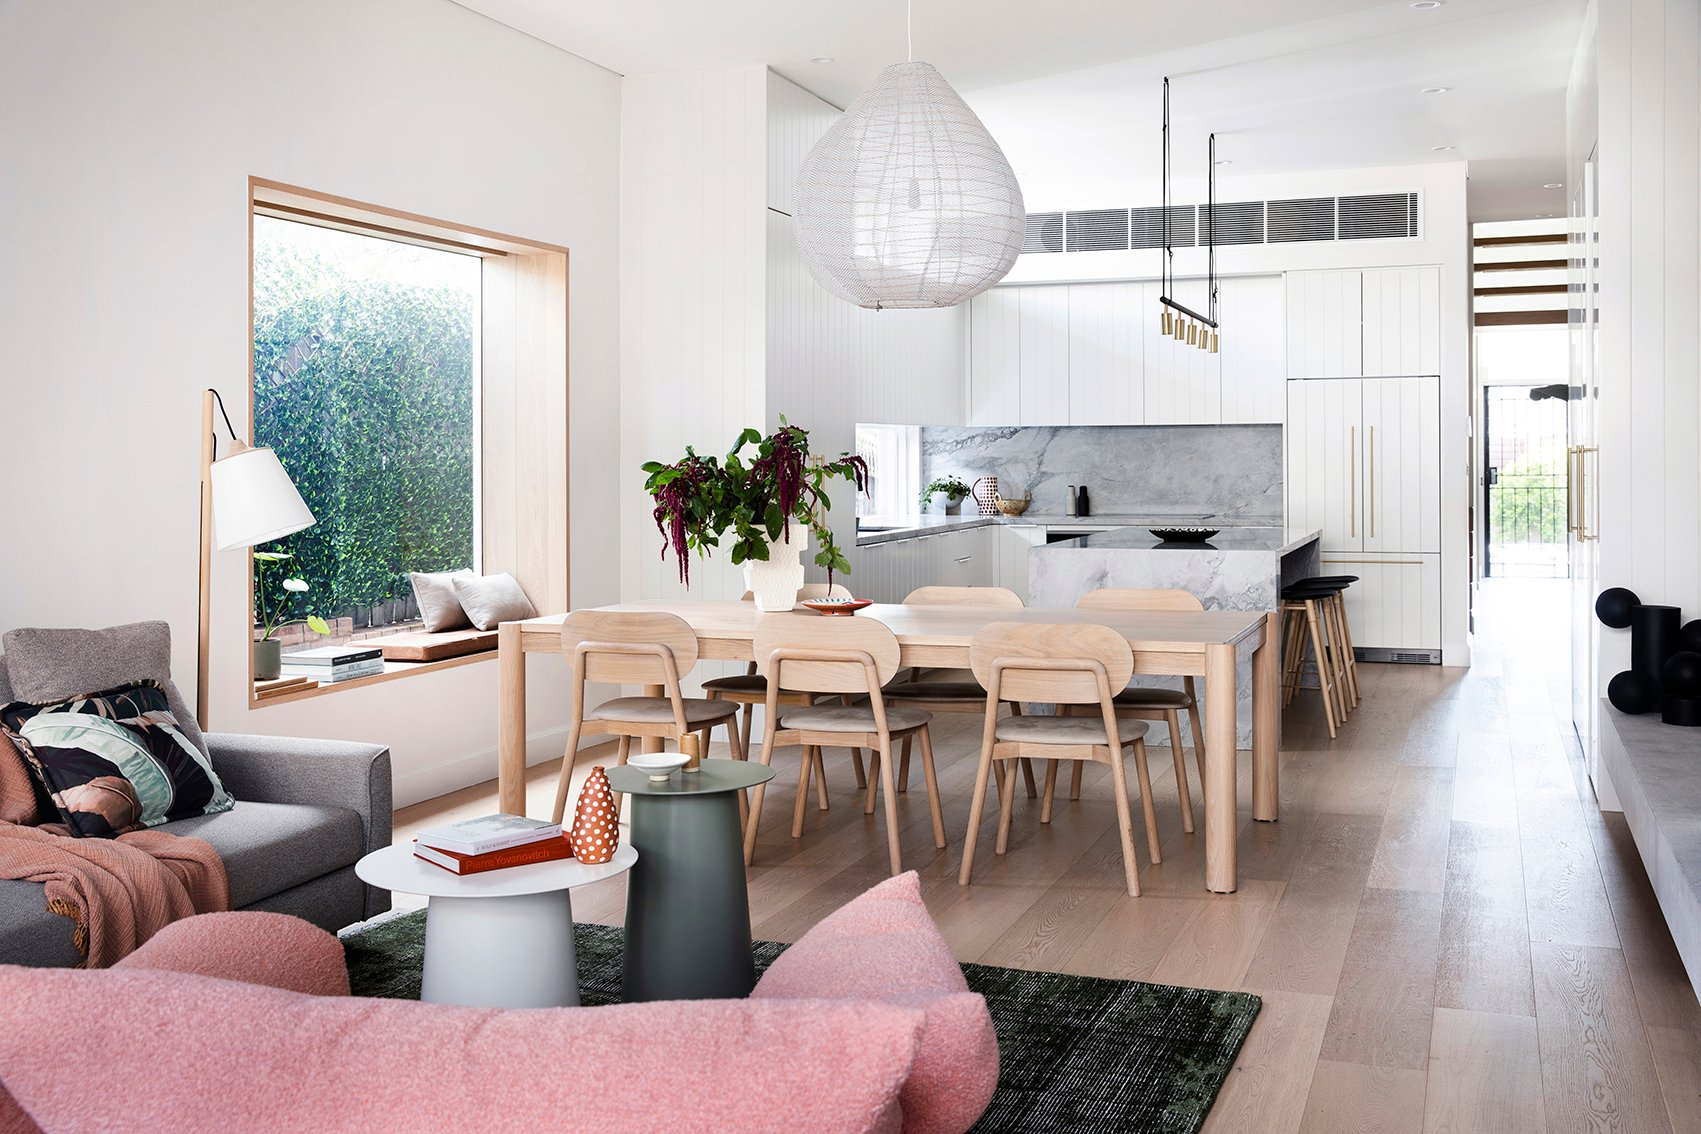 Wilfred Armchair, Huxley Dining Table & McKenzie Dining Chairs